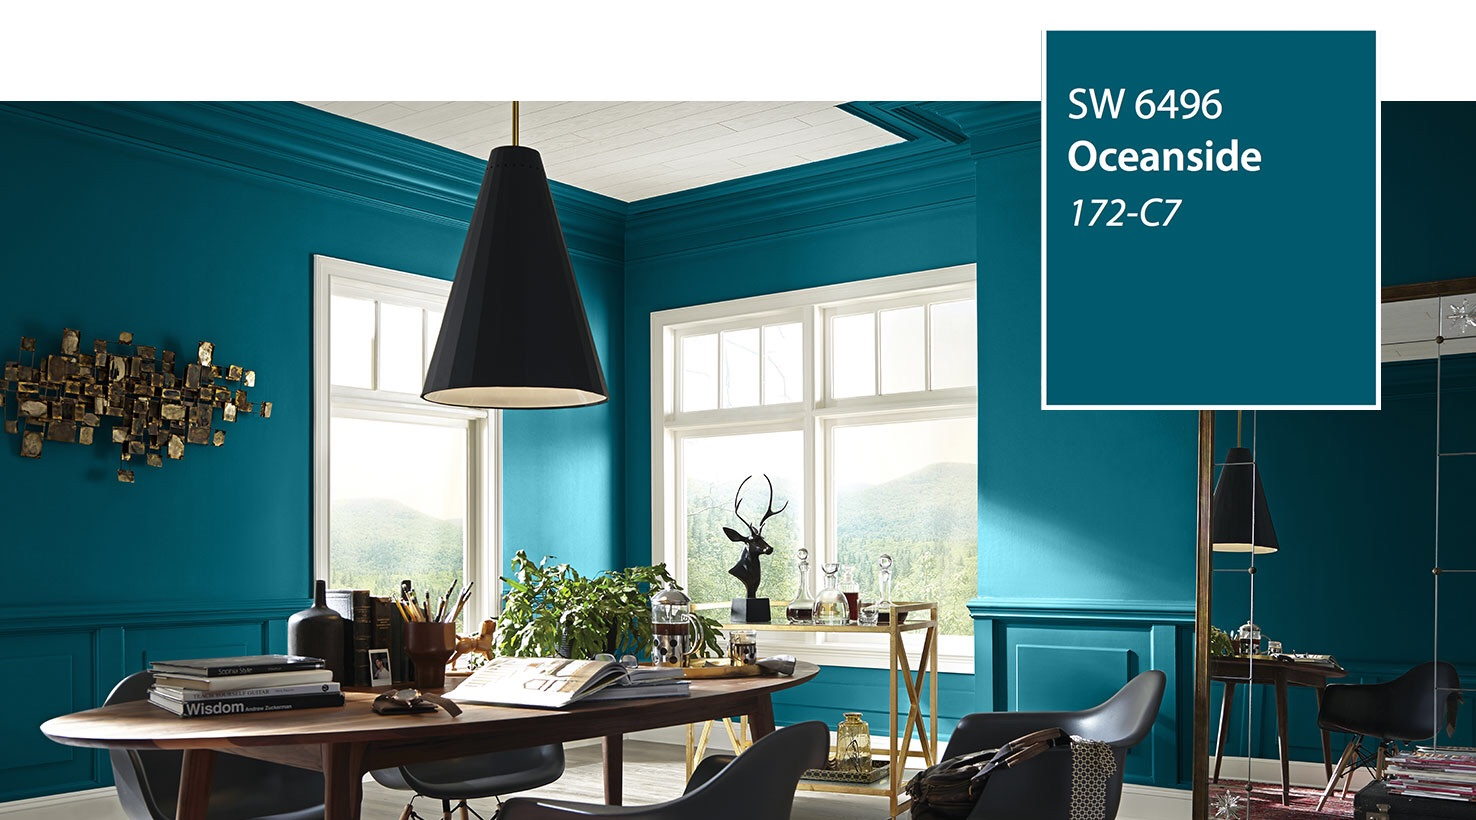 Oceanside SW 6496 wall color